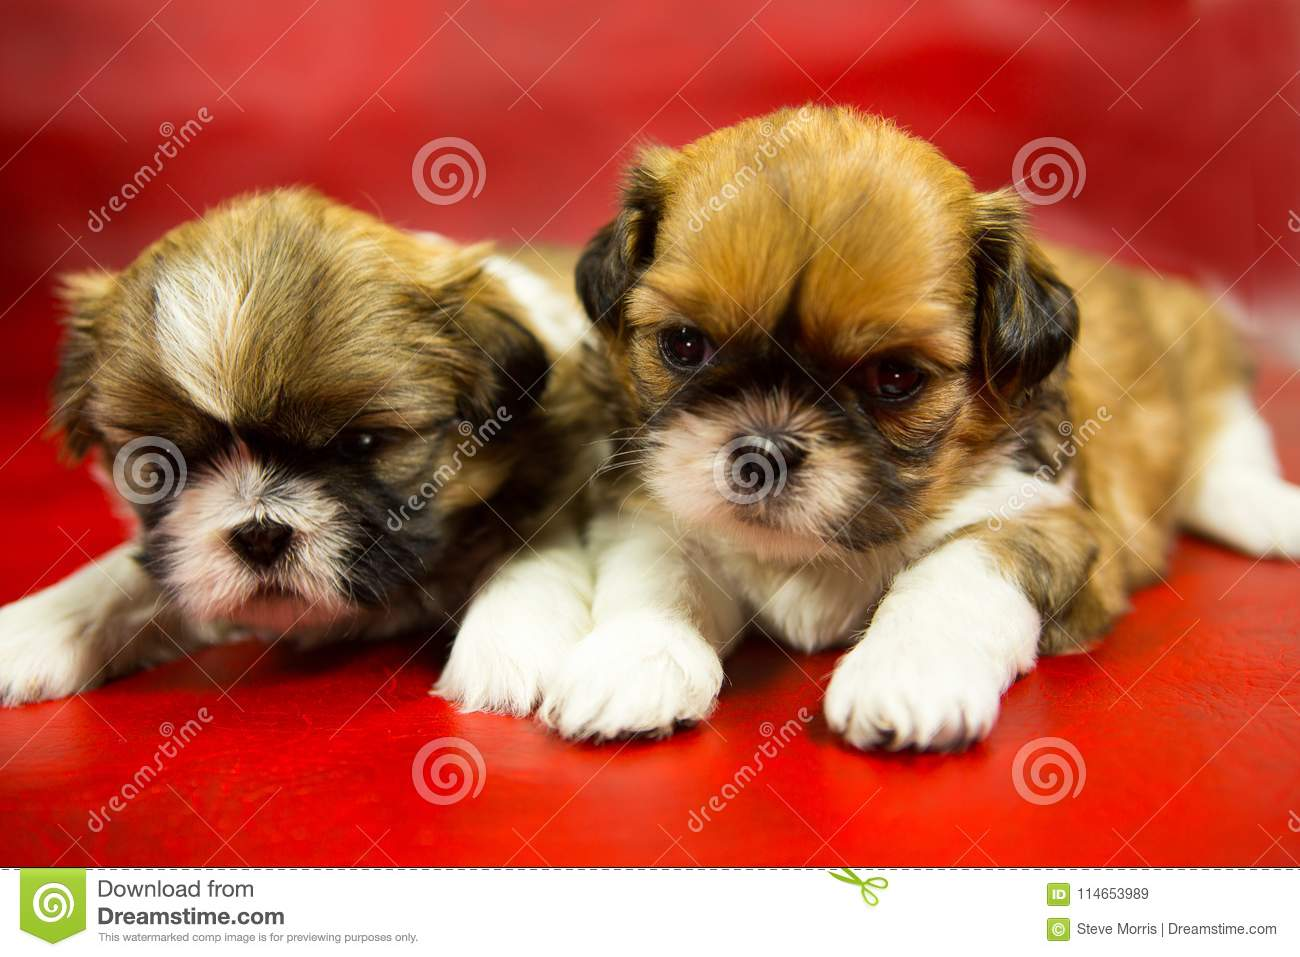 Shih Tzu Puppies On A Red Background Stock Image Image Of Oldest China 114653989